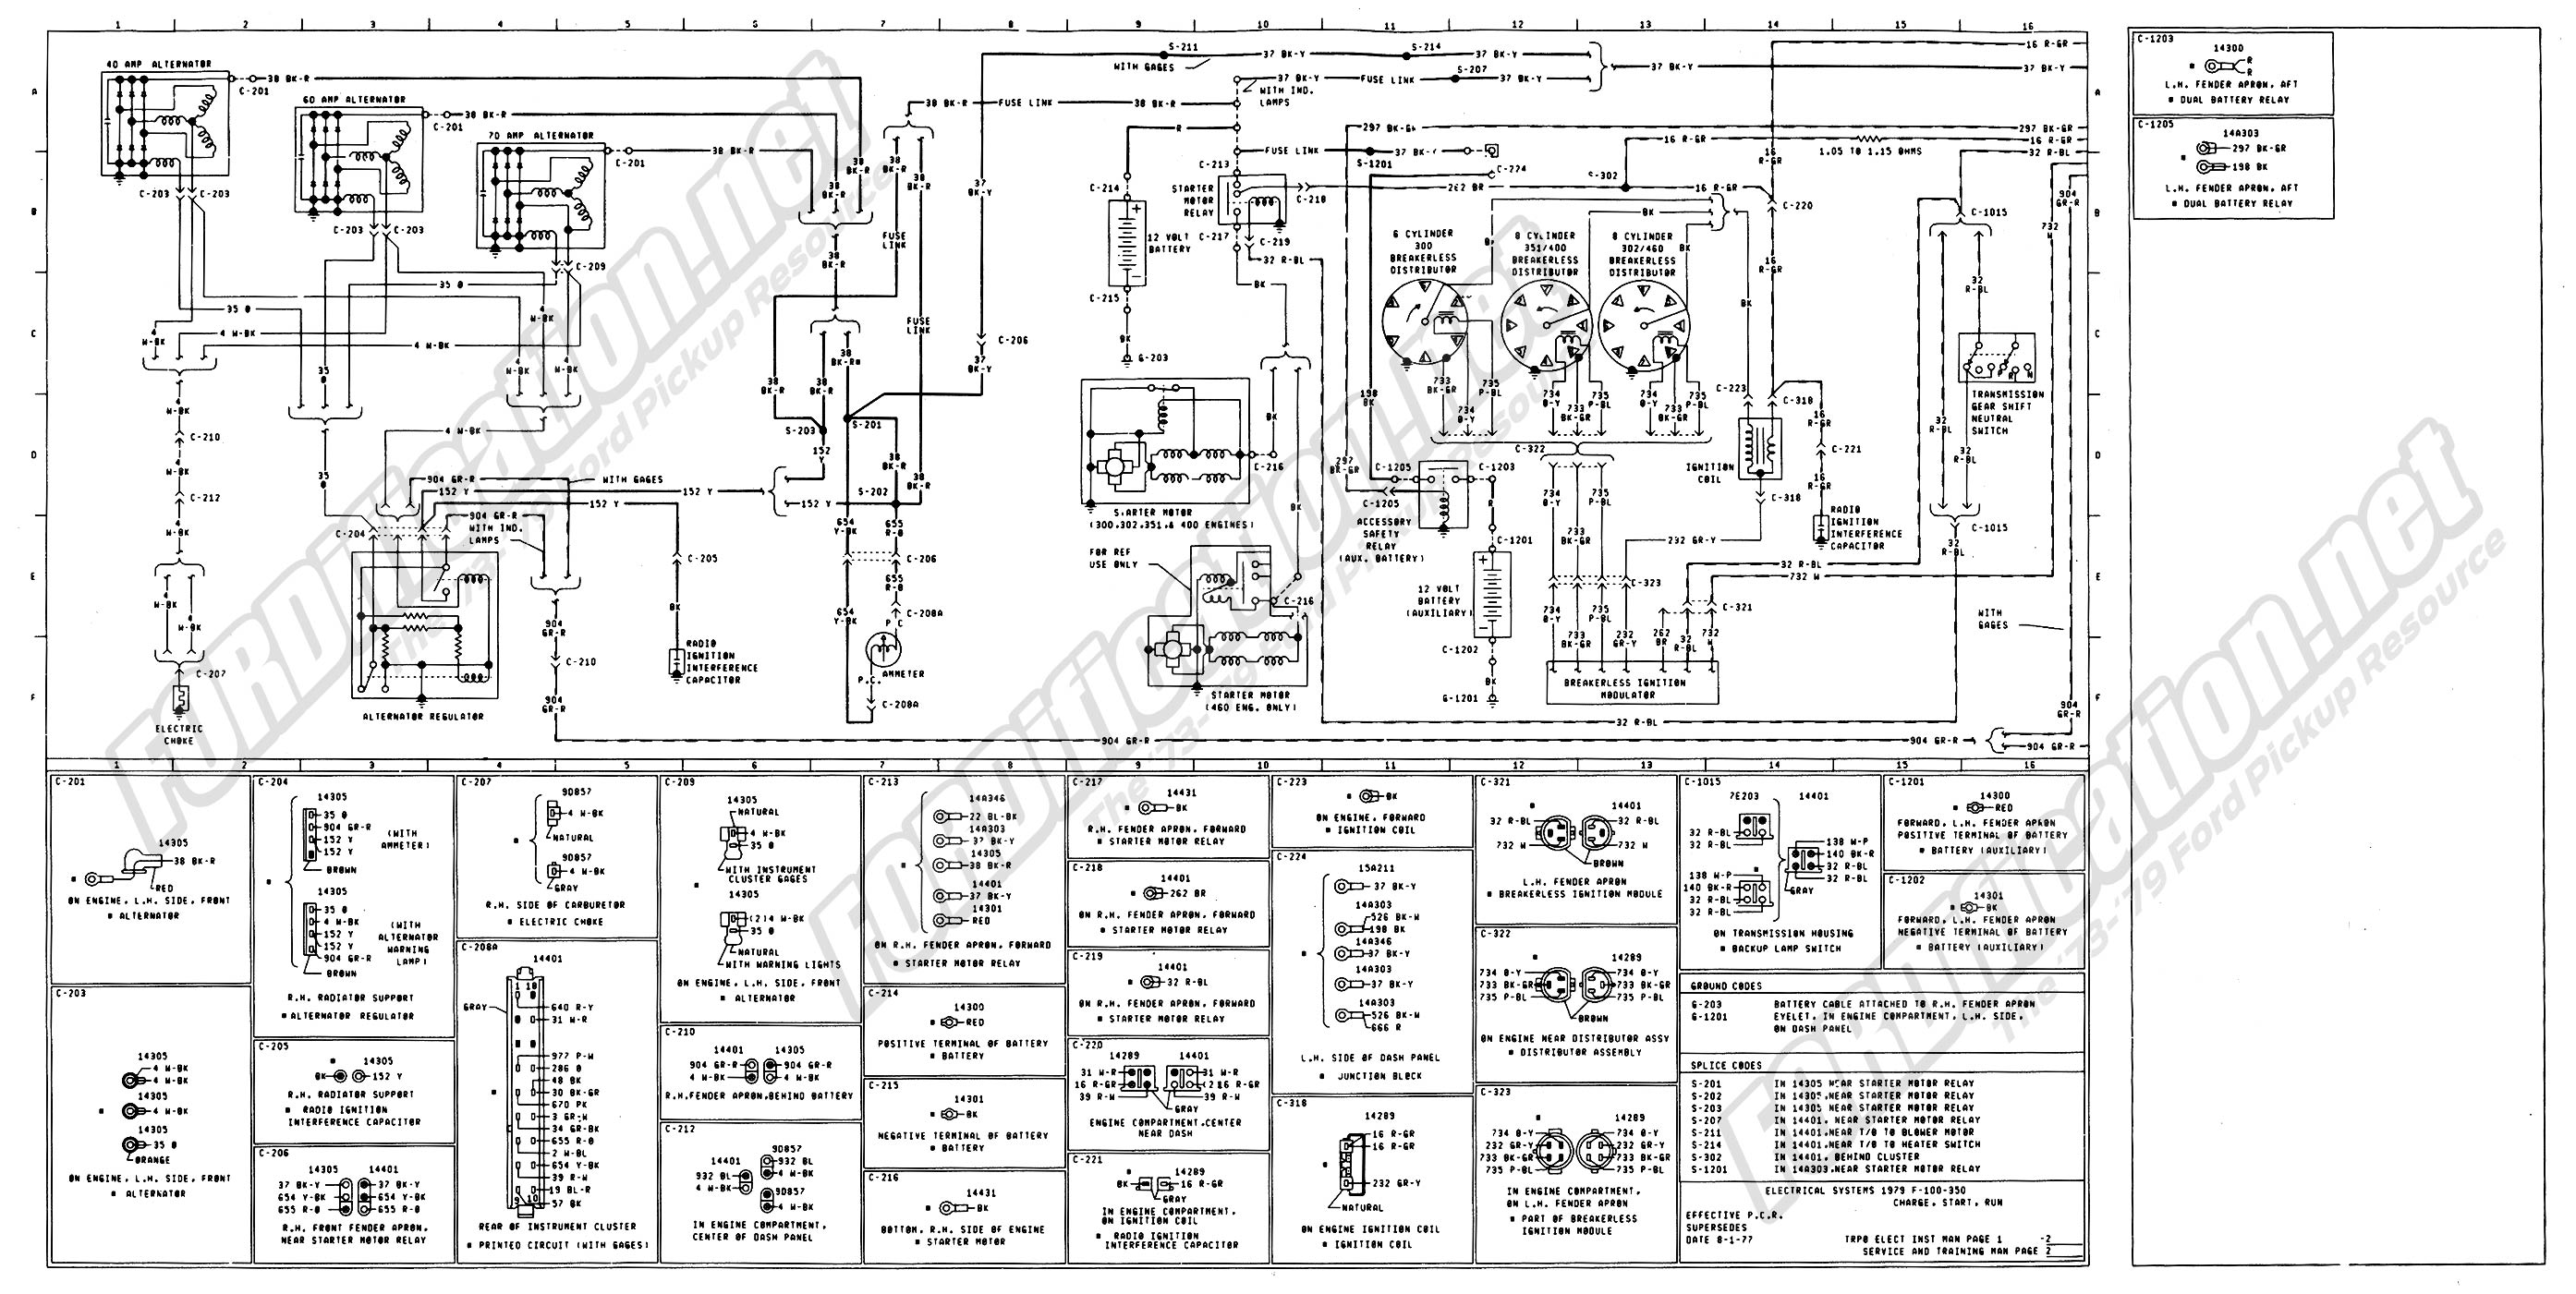 wiring_79master_2of9 1973 1979 ford truck wiring diagrams & schematics fordification net radio wiring diagram 92 ford e350 at virtualis.co